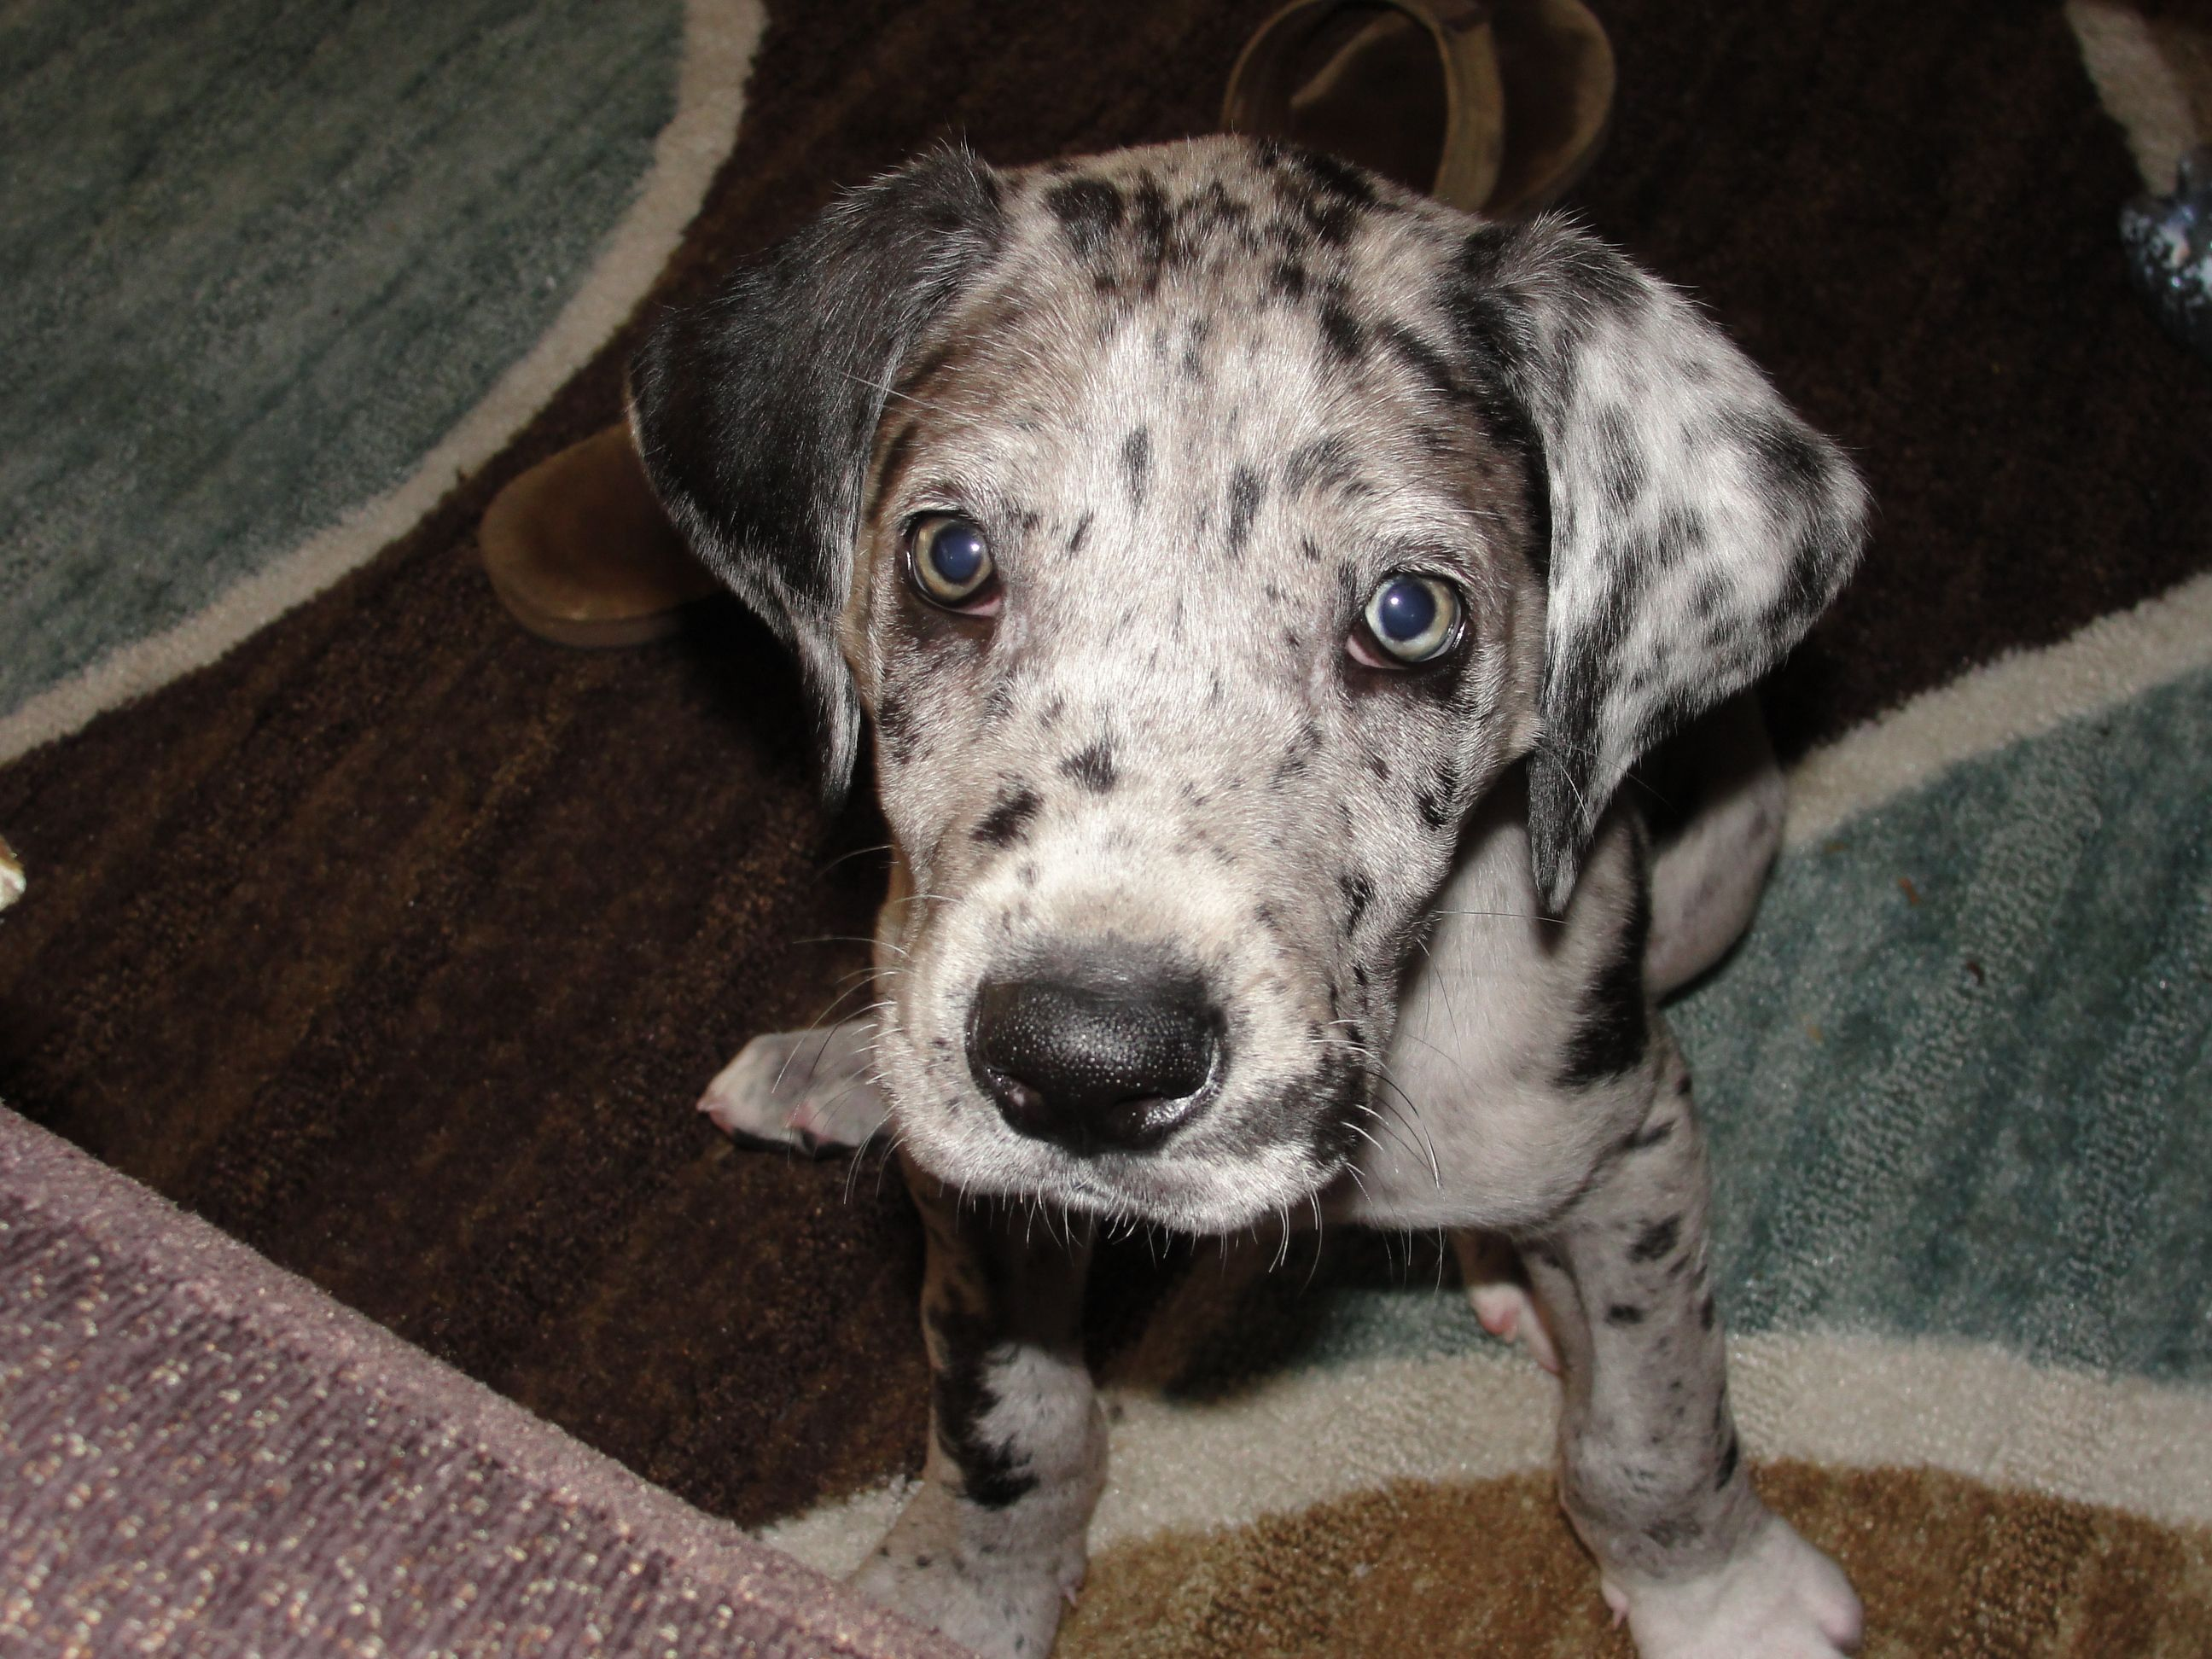 It's hard to believe that our baby girl ever use to be this small! She is still only 6months old and growing like a weed. I love our great dane puppy :)